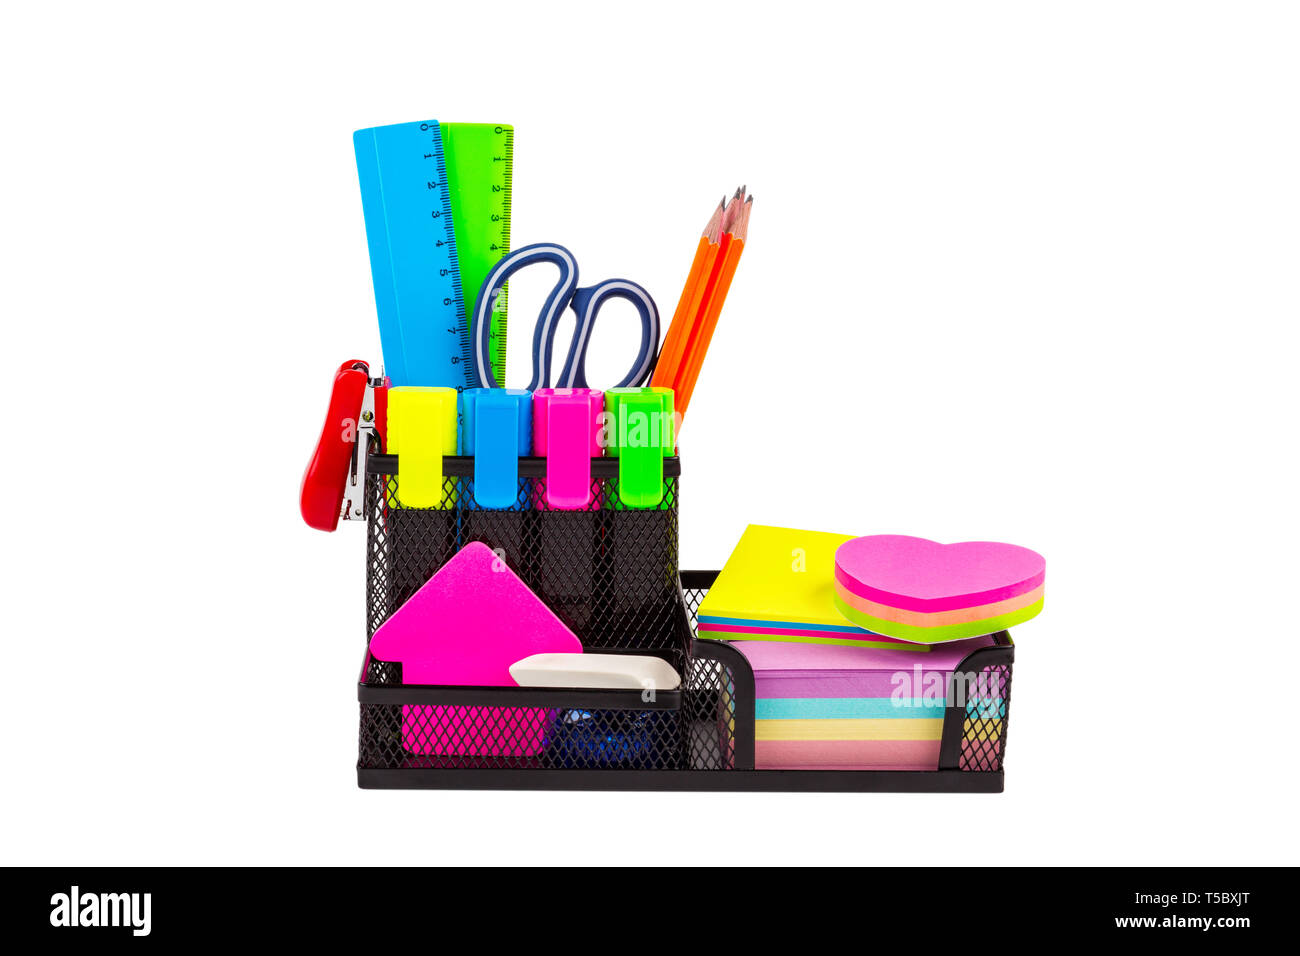 Stationery isolated on white. Markers, pencils, rulers, stickers, stapler, scissors, paints - Stock Image